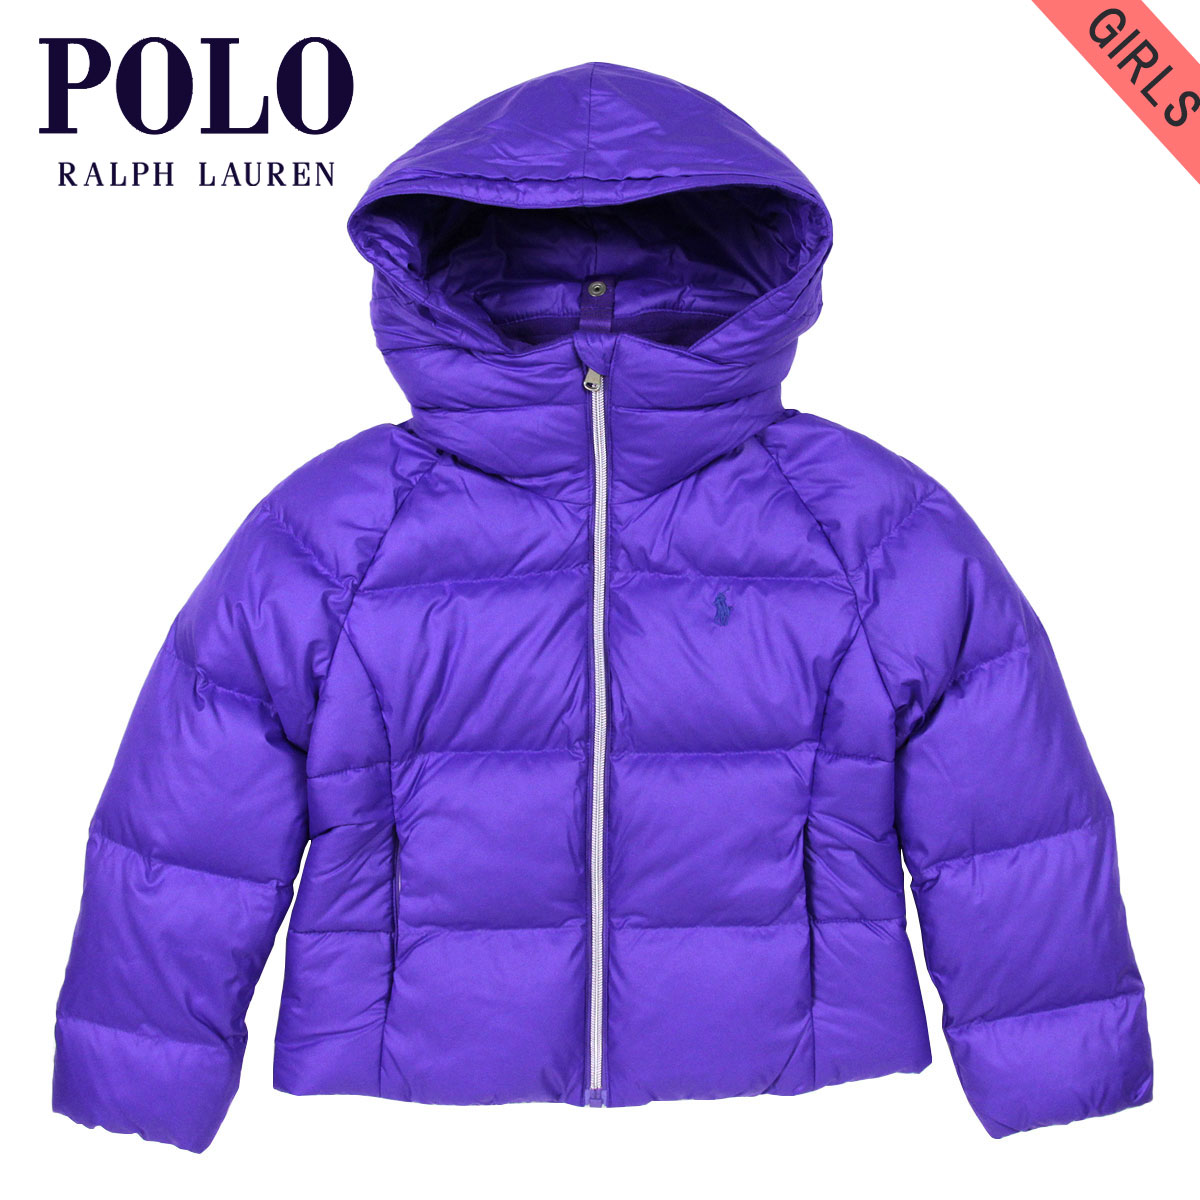 23923bbccf780 Poloralflorenkids POLO RALPH LAUREN CHILDREN genuine kids clothing girls  down jacket QUILTED DOWN JACKET 66152466